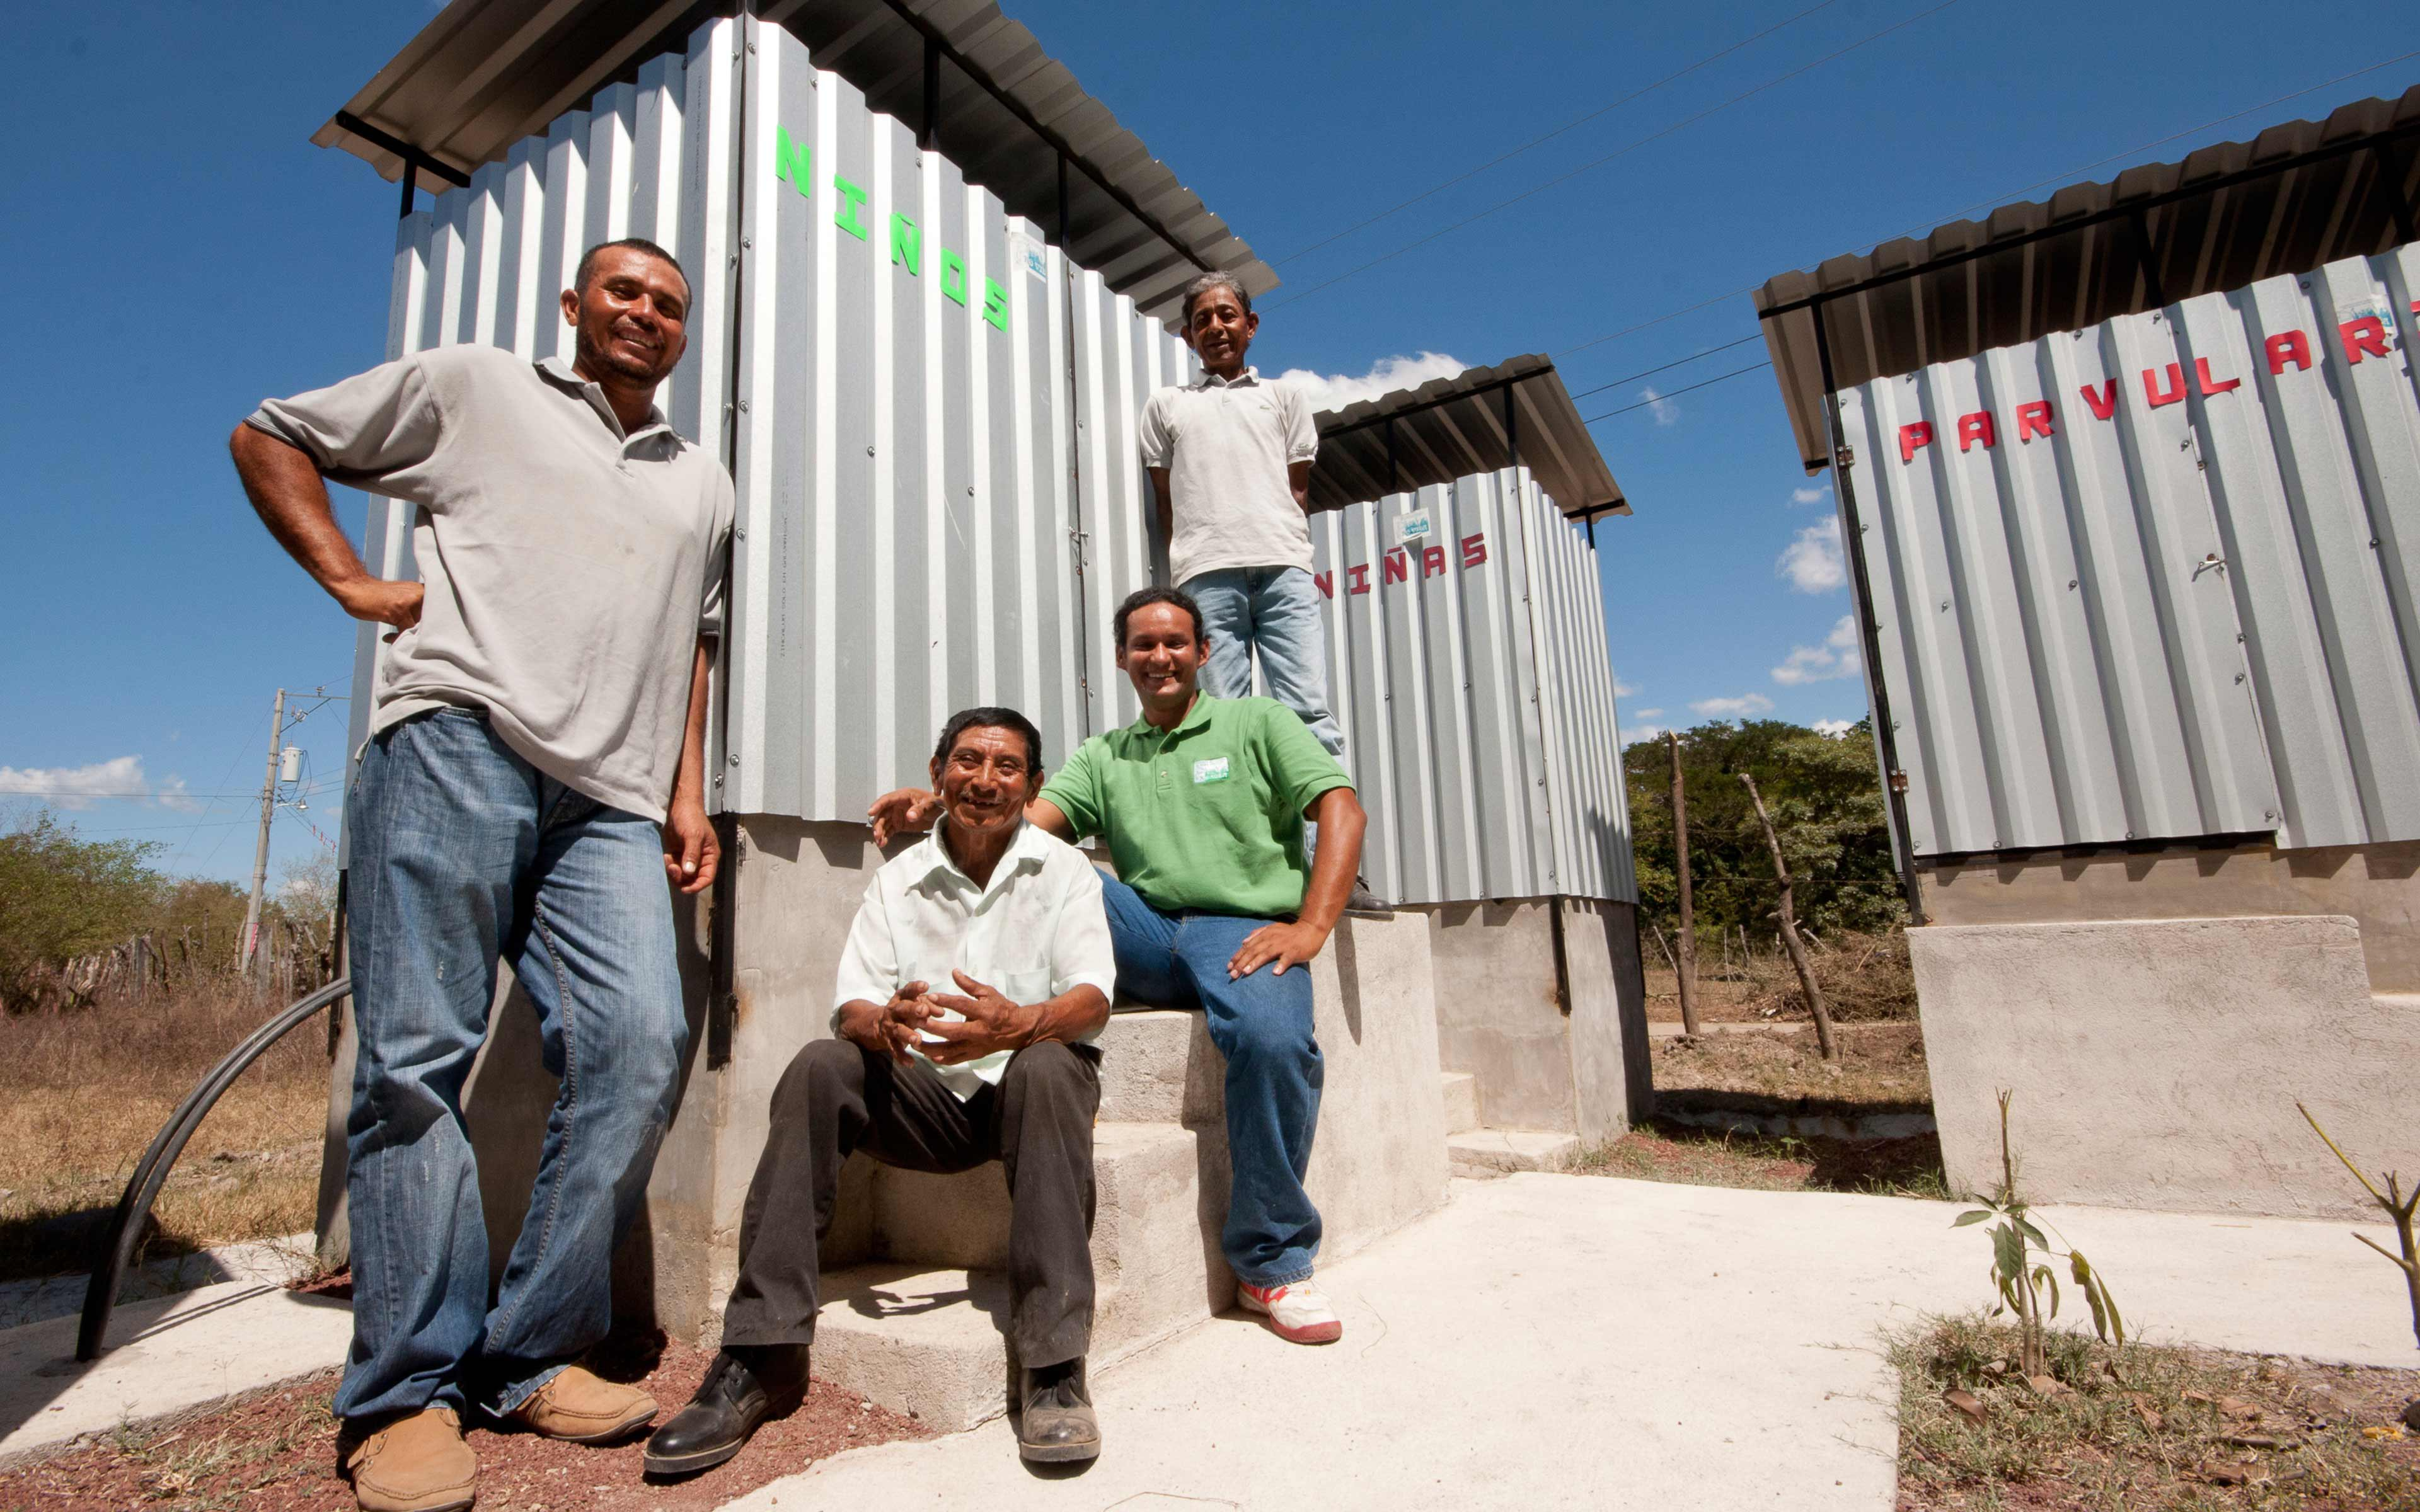 Local humanitarian actors like PRO-VIDA are motivated to create long-term solutions for the communities where they work—like these flood-resistant composting latrines installed by PRO-VIDA in Zacatecoluca, El Salvador.